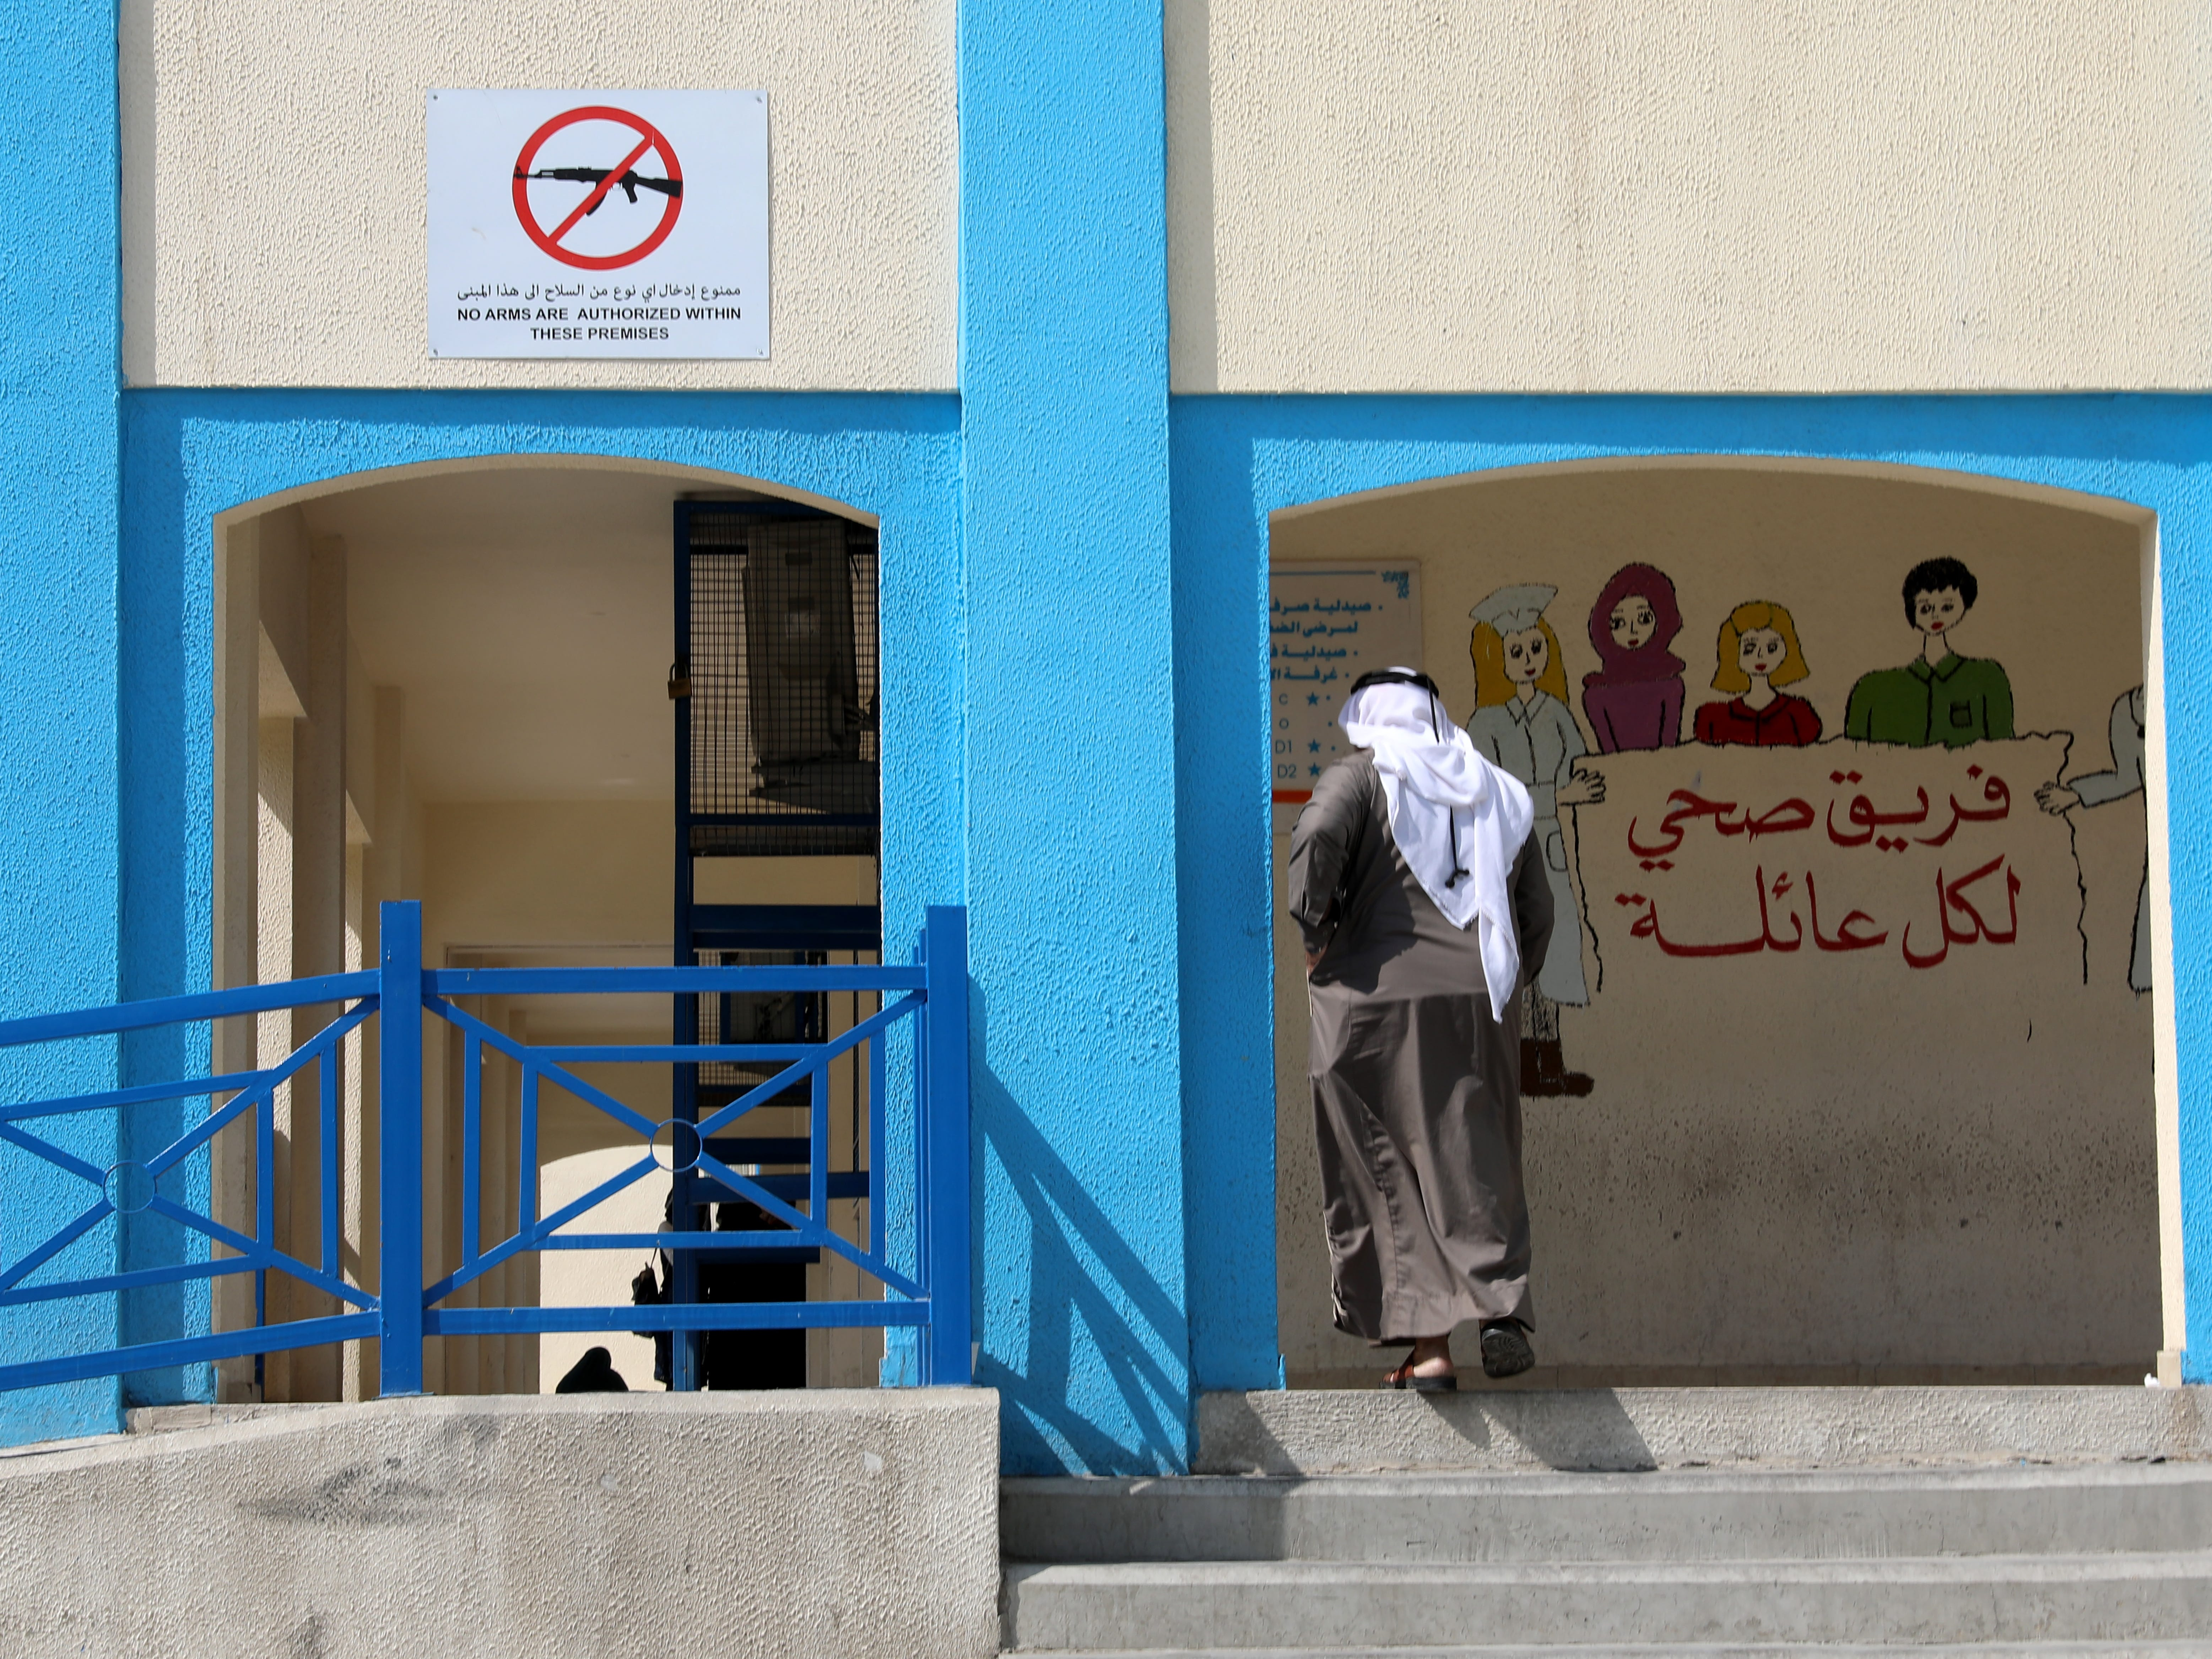 A Palestinian refugee in Jordan walks past a 'no weapons allowed' sign outside a clinic of the United Nations Relief and Works Agency for Palestine Refugees in the Near East (UNRWA), at the new Amman camp on the outskirts of Amman, Jordan on Sept. 2, 2018.